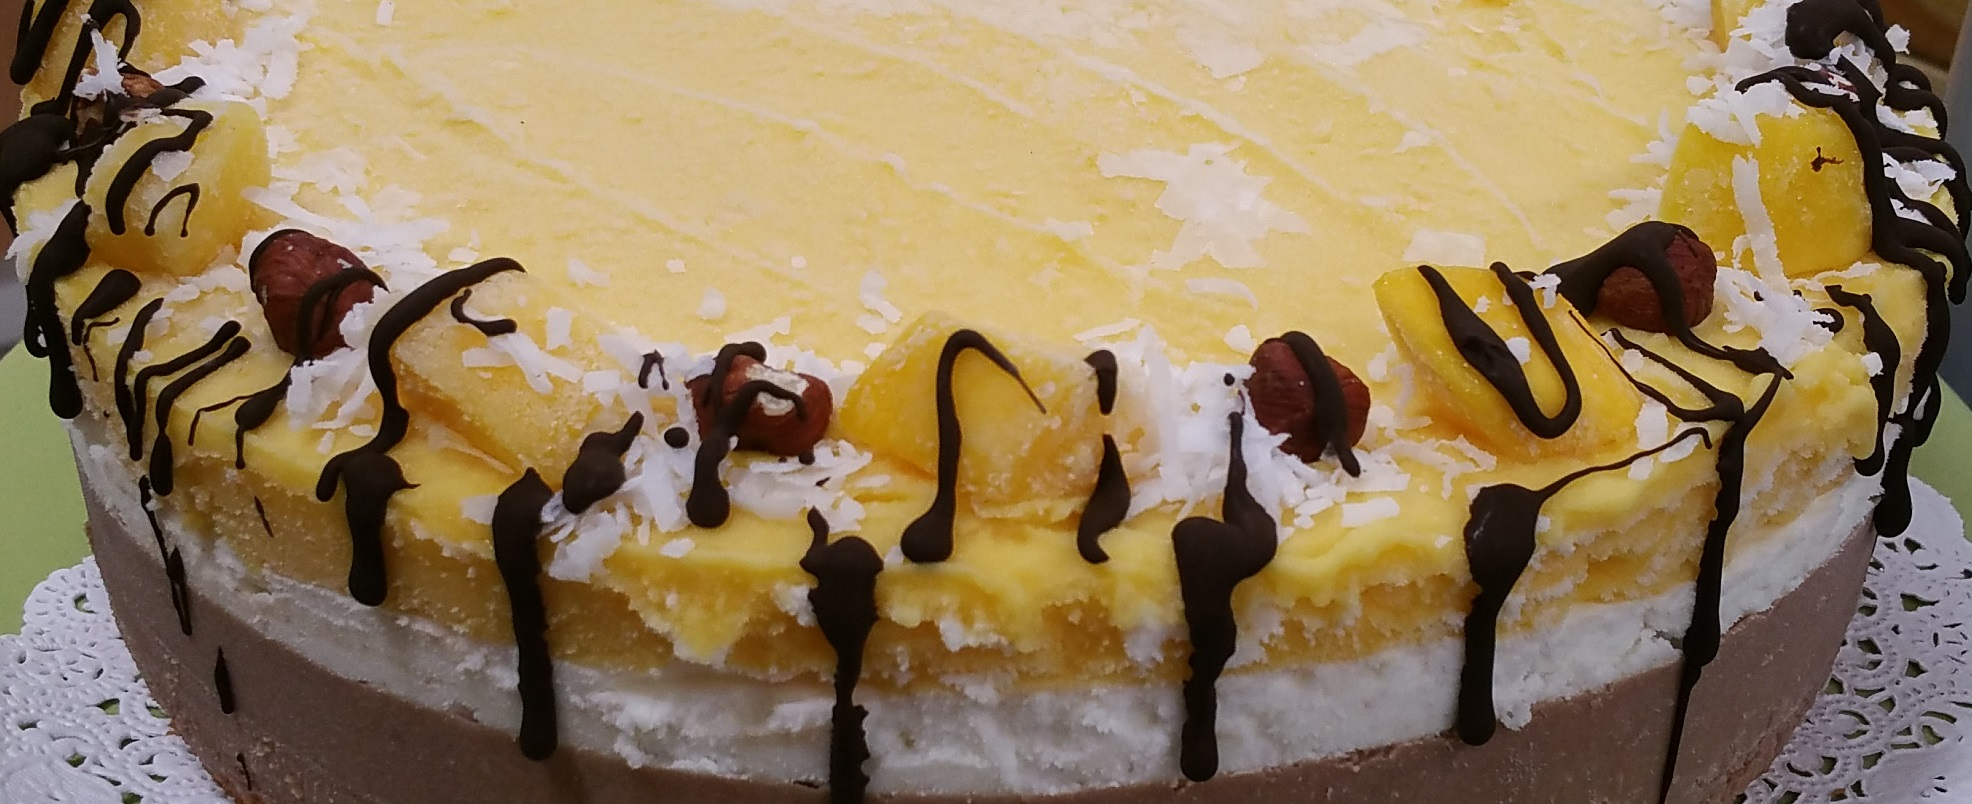 Cakes & Pies - We have your Event covered